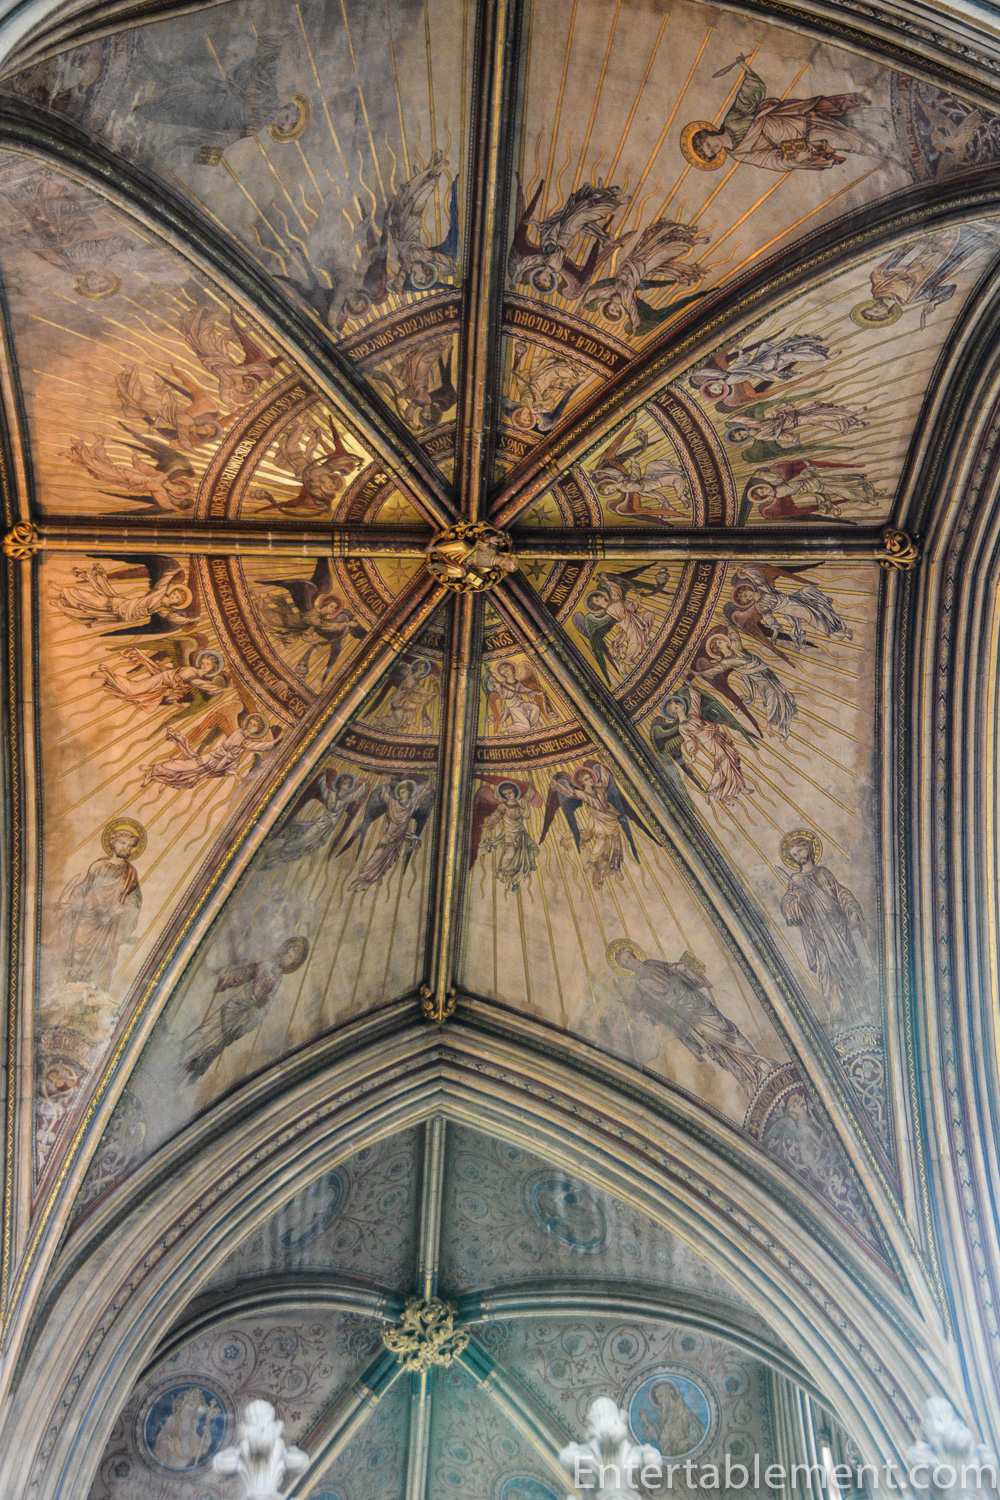 Ceiling detail in Worcester Cathedral